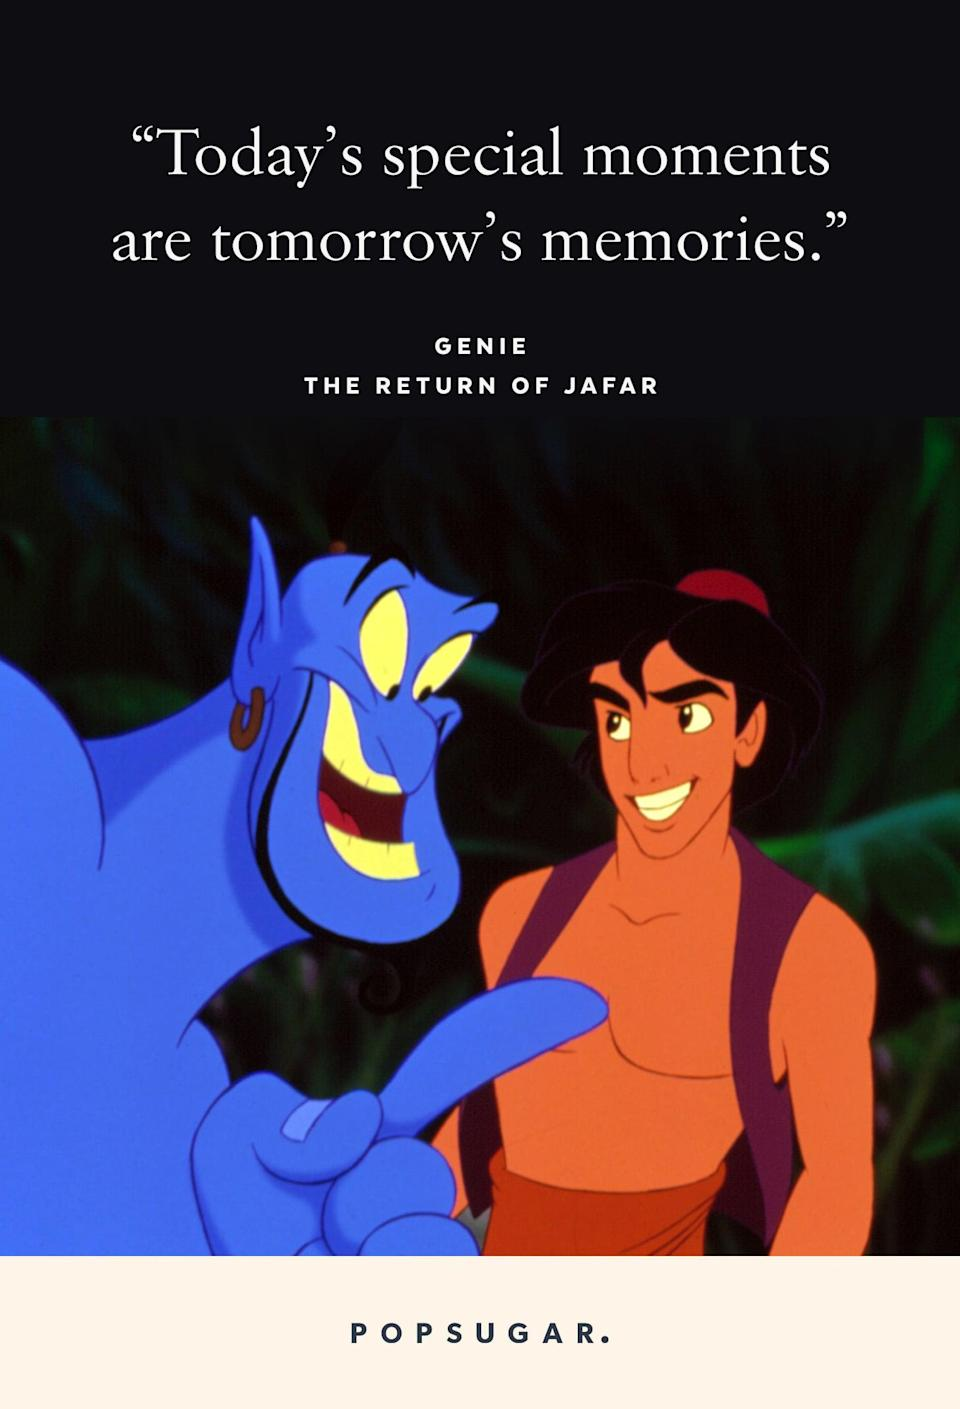 "<p>""Today's special moments are tomorrow's memories."" - Genie, <b>The Return of Jafar</b></p>"